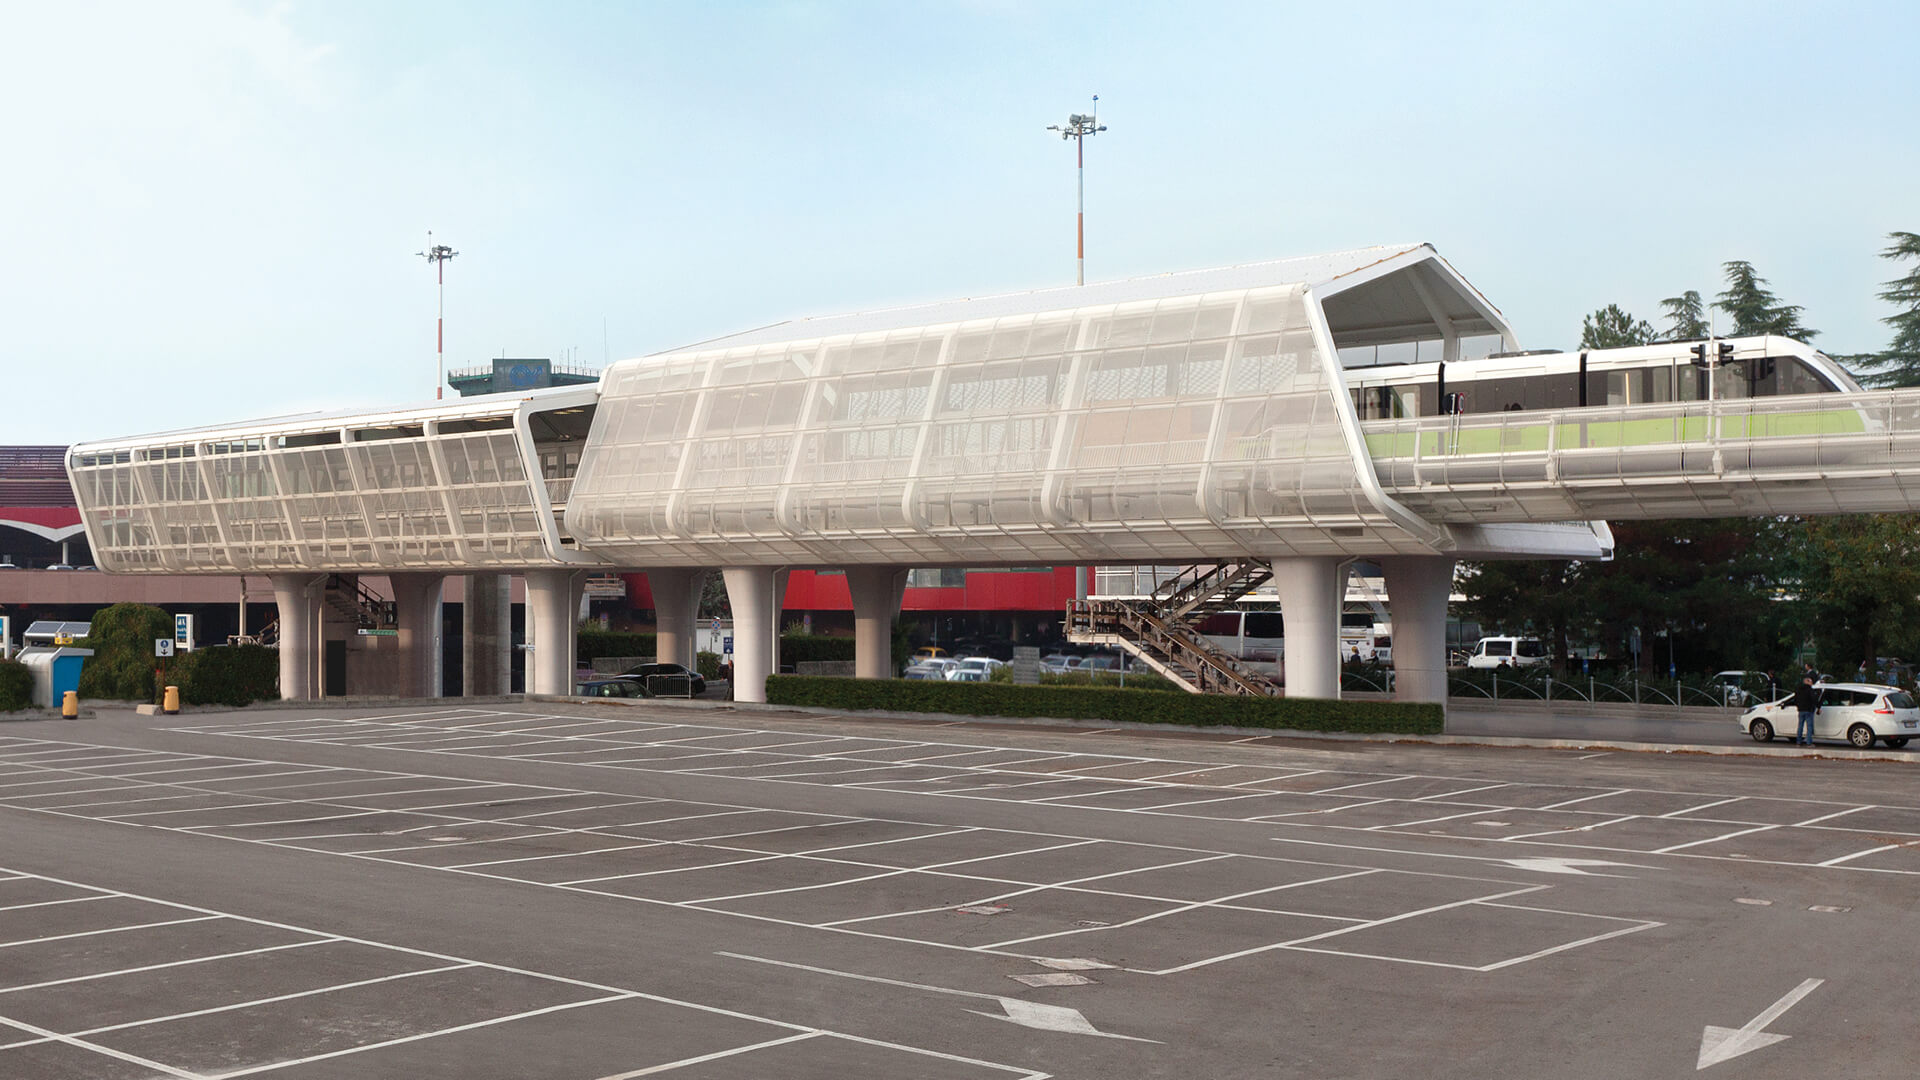 """""""People Mover' links Bologna Centrale railway station to the city's airport 